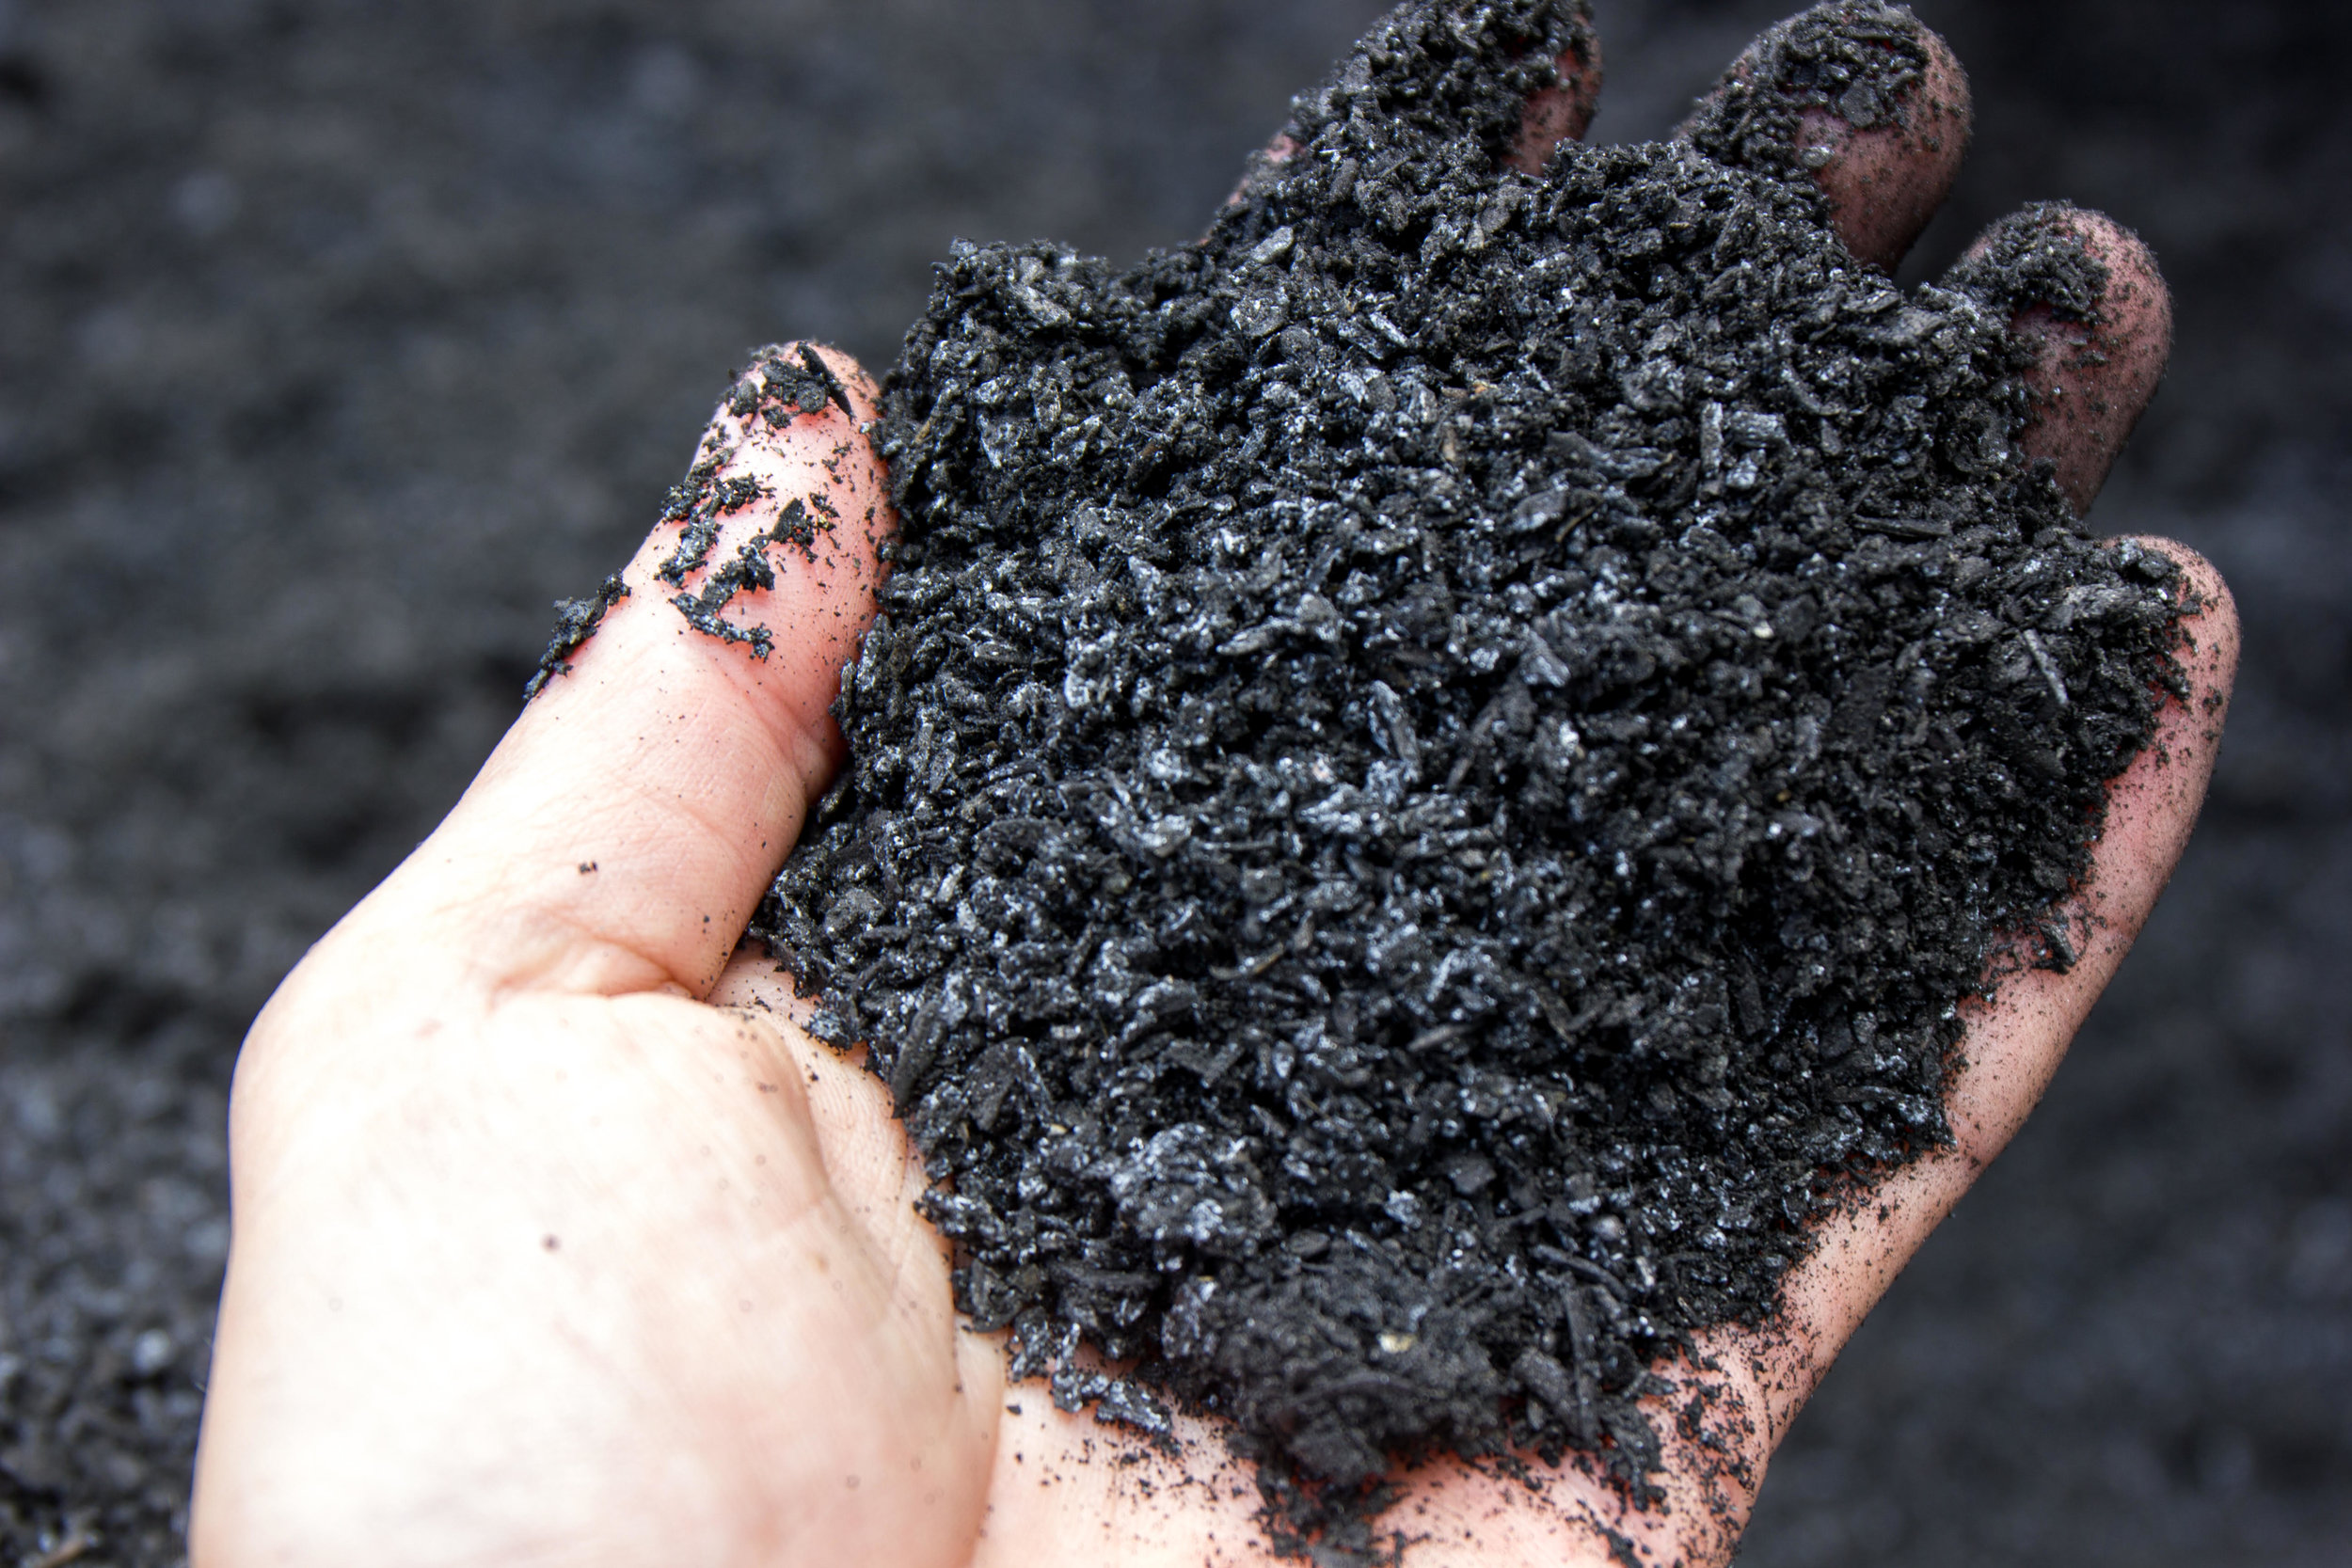 Image courtesy of Josiah Hunt, CEO of  Pacific Biochar